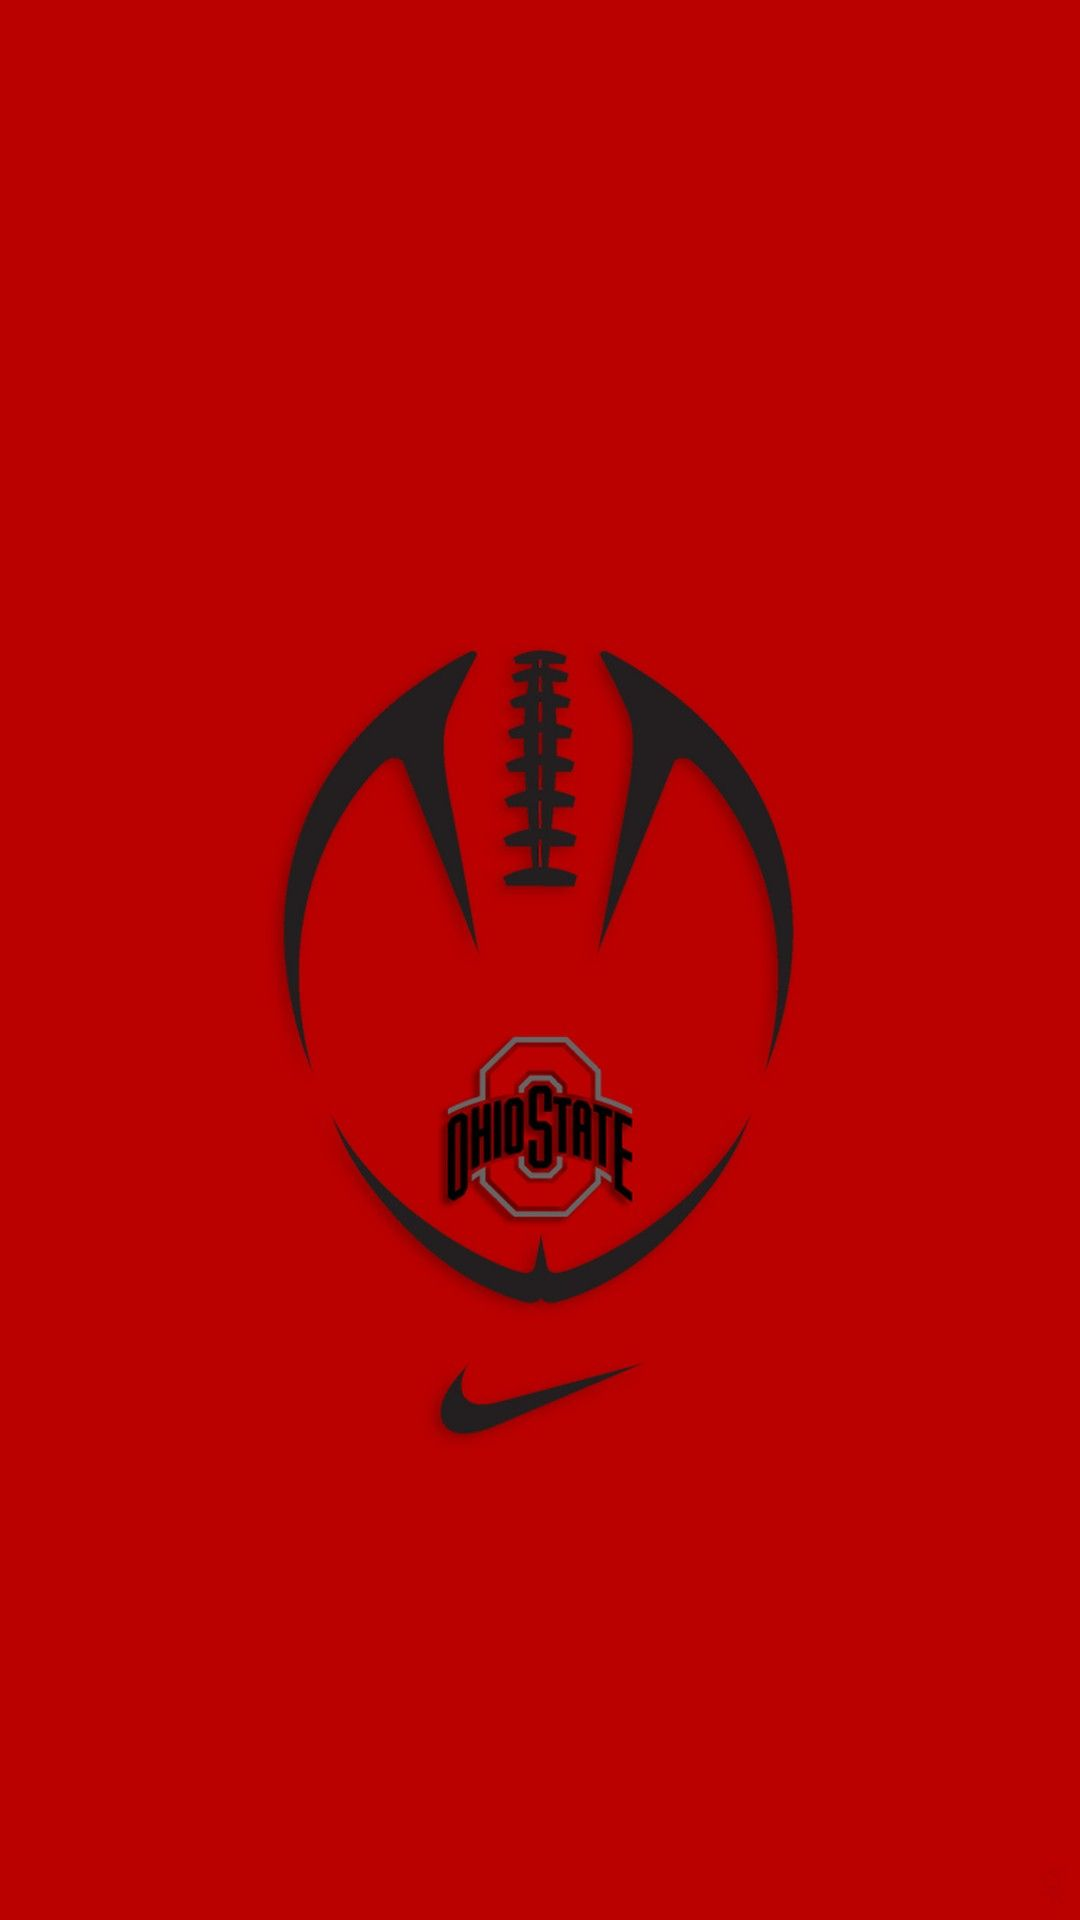 Ohio State Buckeyes Wallpaper iPhone best is high definition iPhone wallpaper 2018. You can make this wallpaper for your iPhone 5, 6, 7, 8, X backgrounds, ...